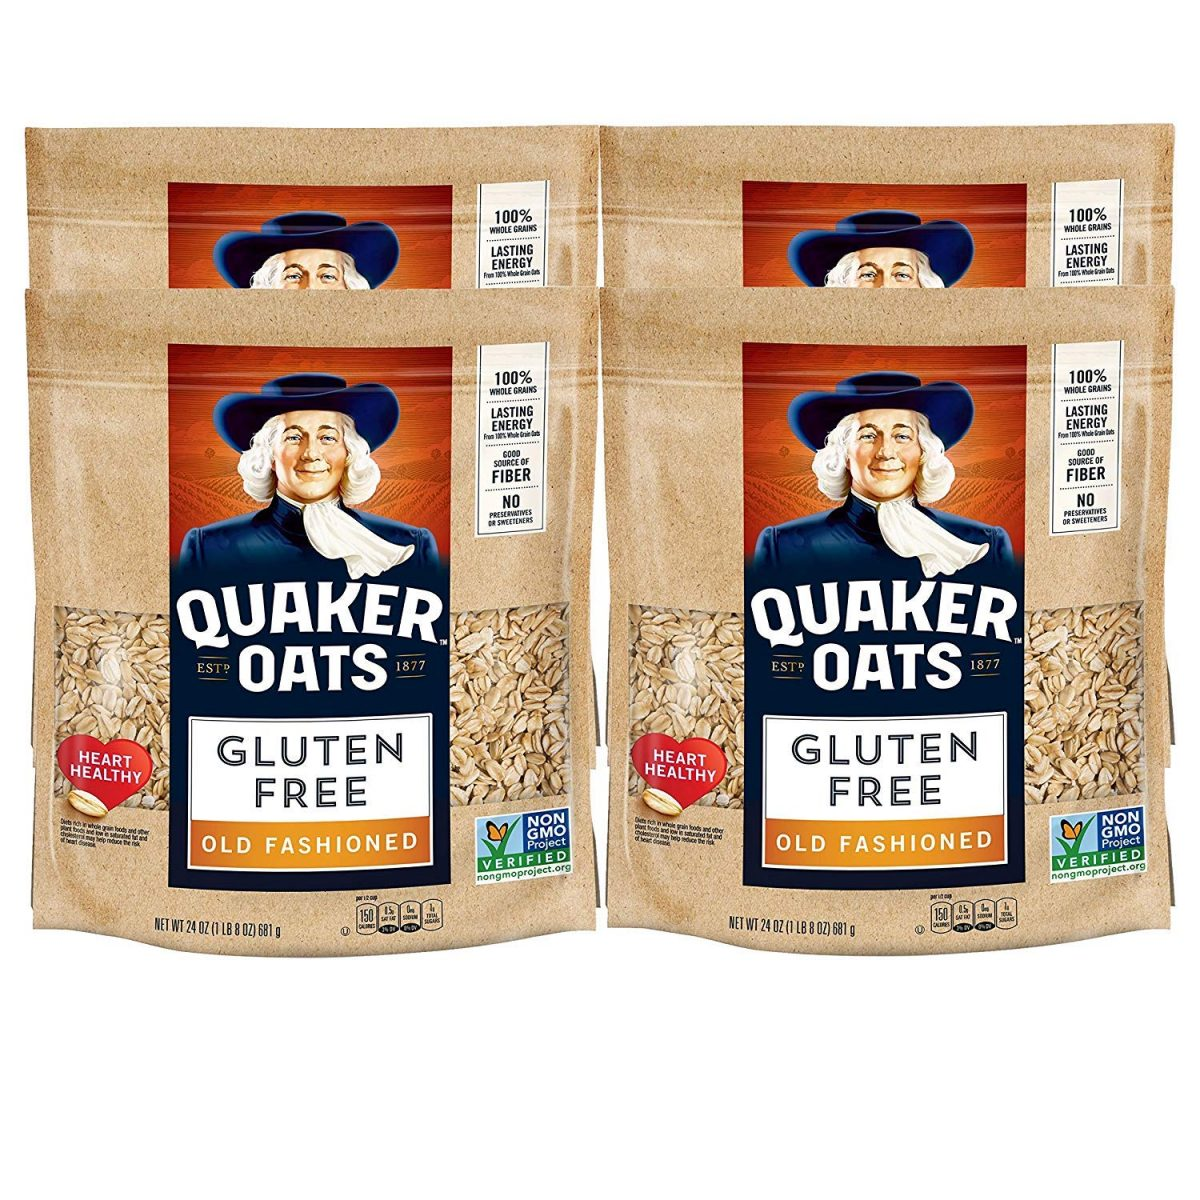 Quaker Gluten Free Old Fashioned Rolled Oats.